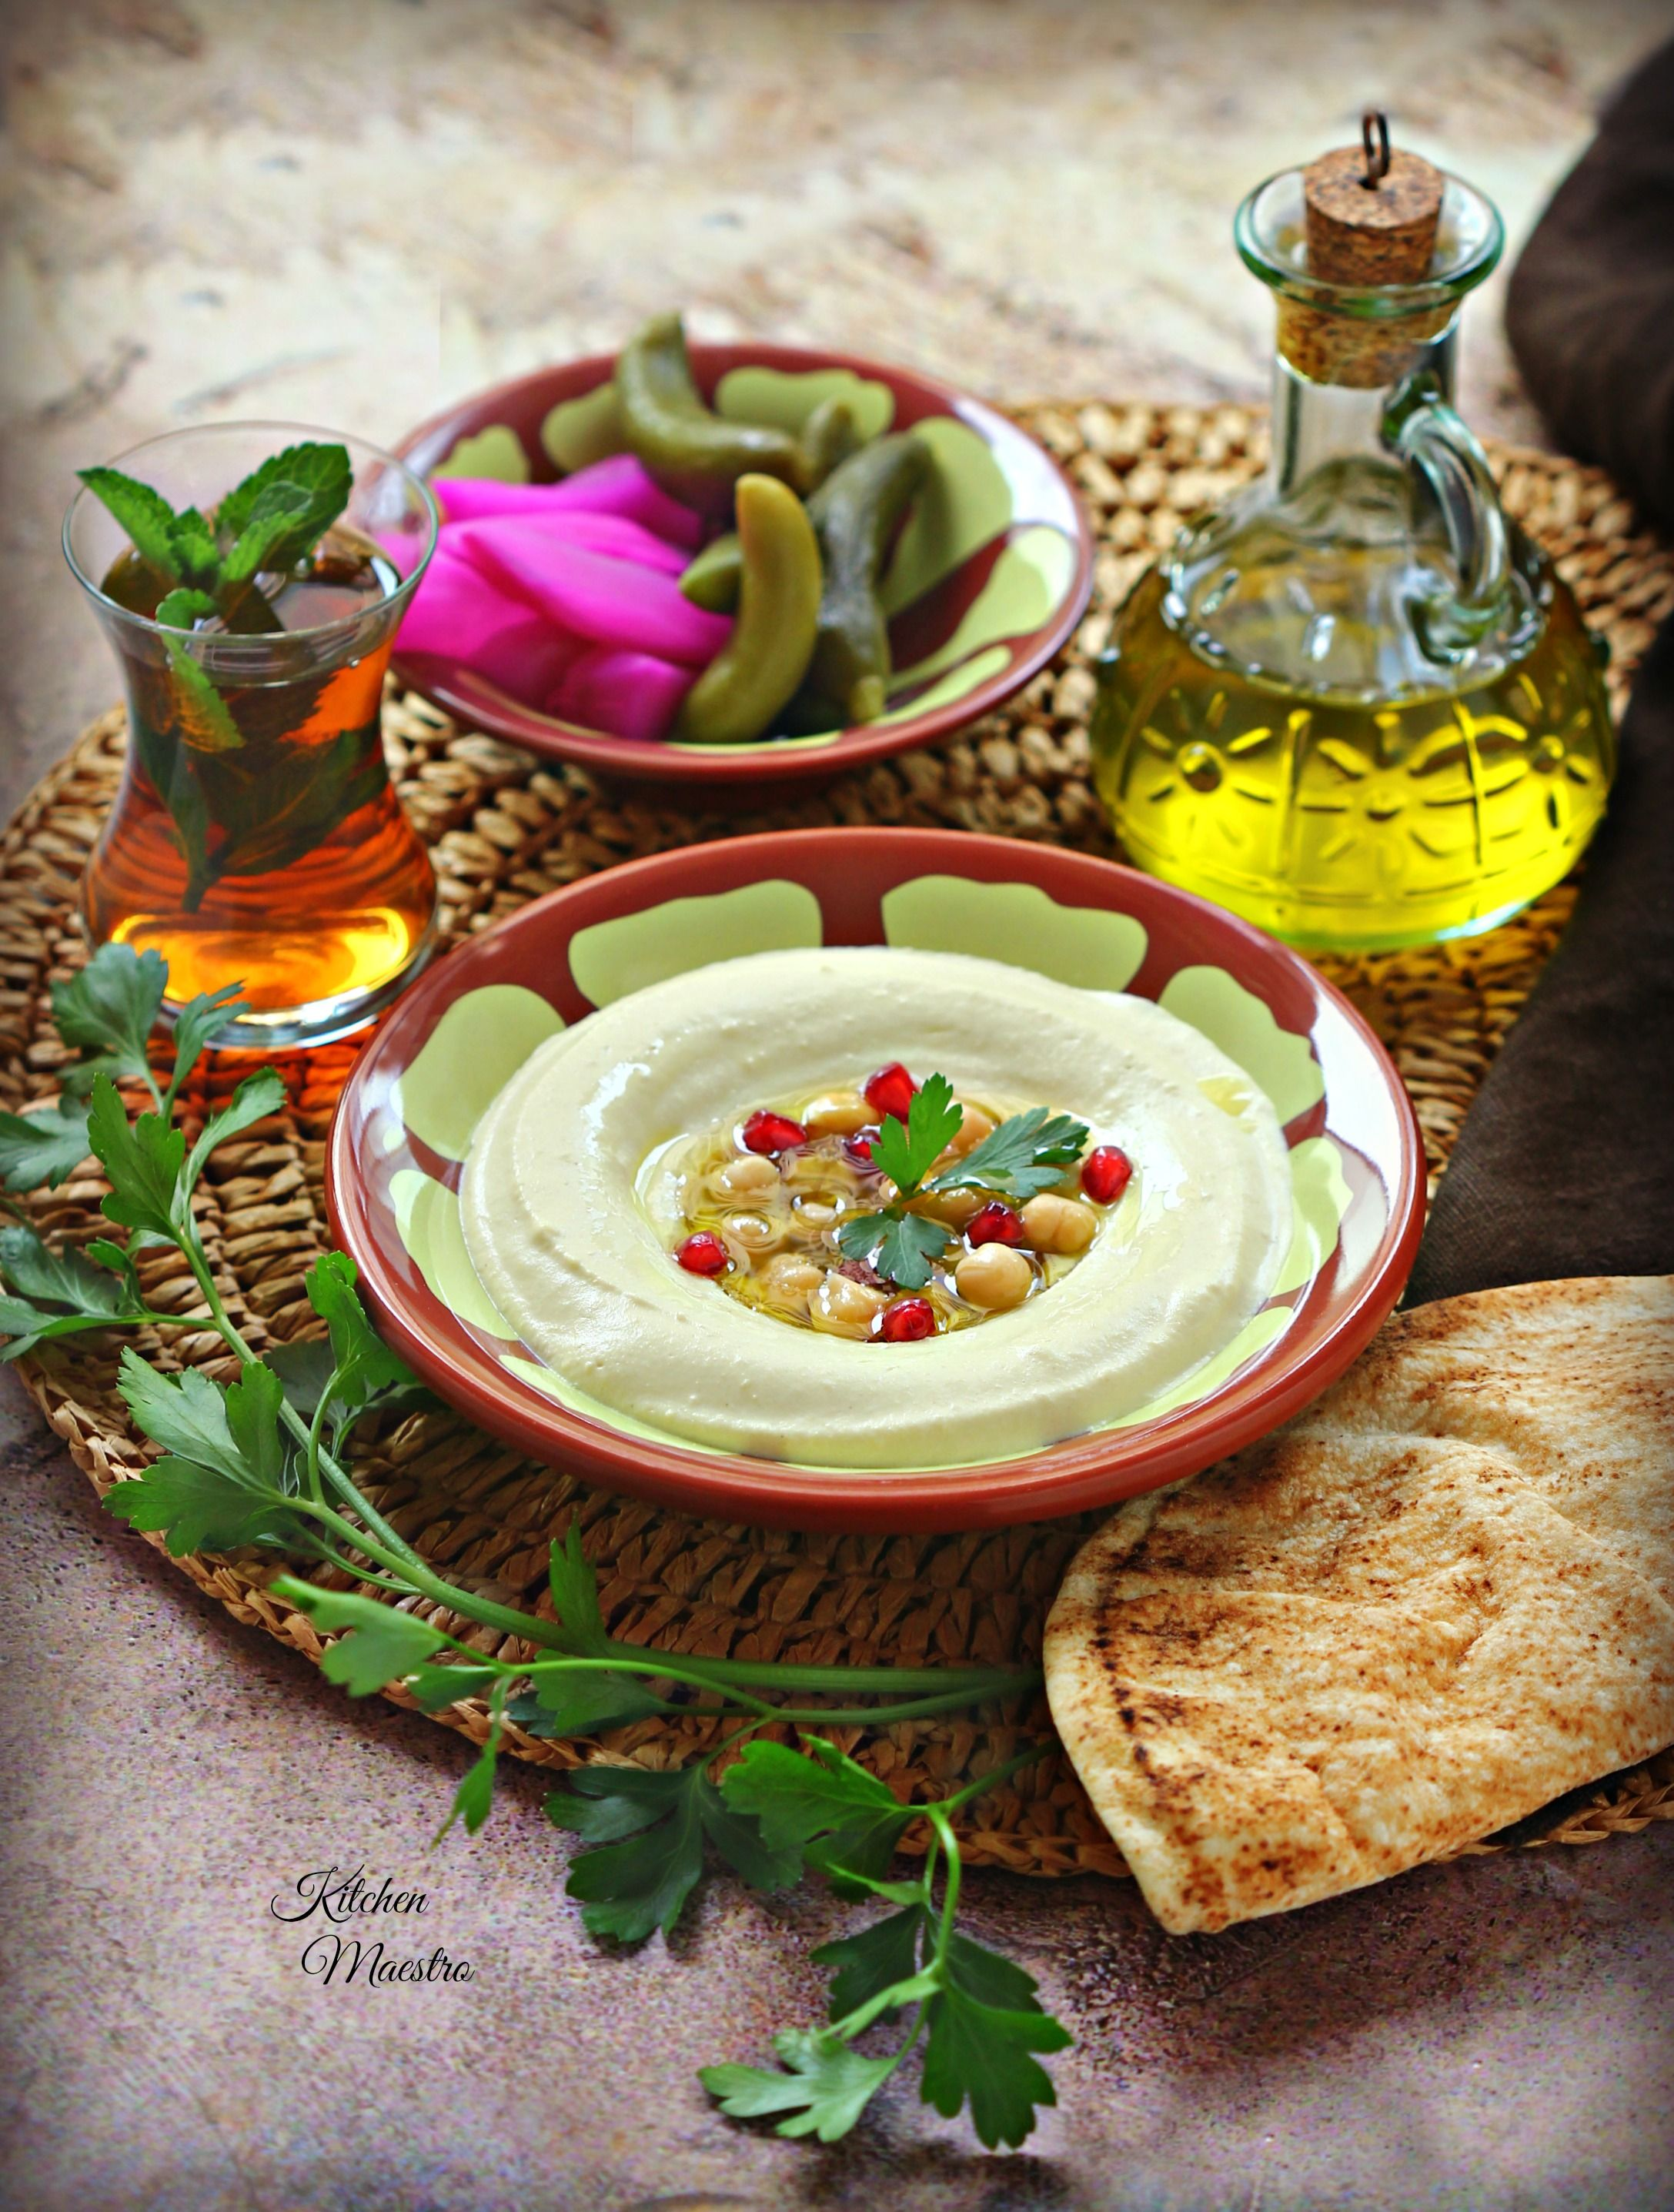 Home made hummus middle eastern arabic dish usually served as a dip home made hummus middle eastern arabic dish usually served as a dip or appitizer forumfinder Image collections